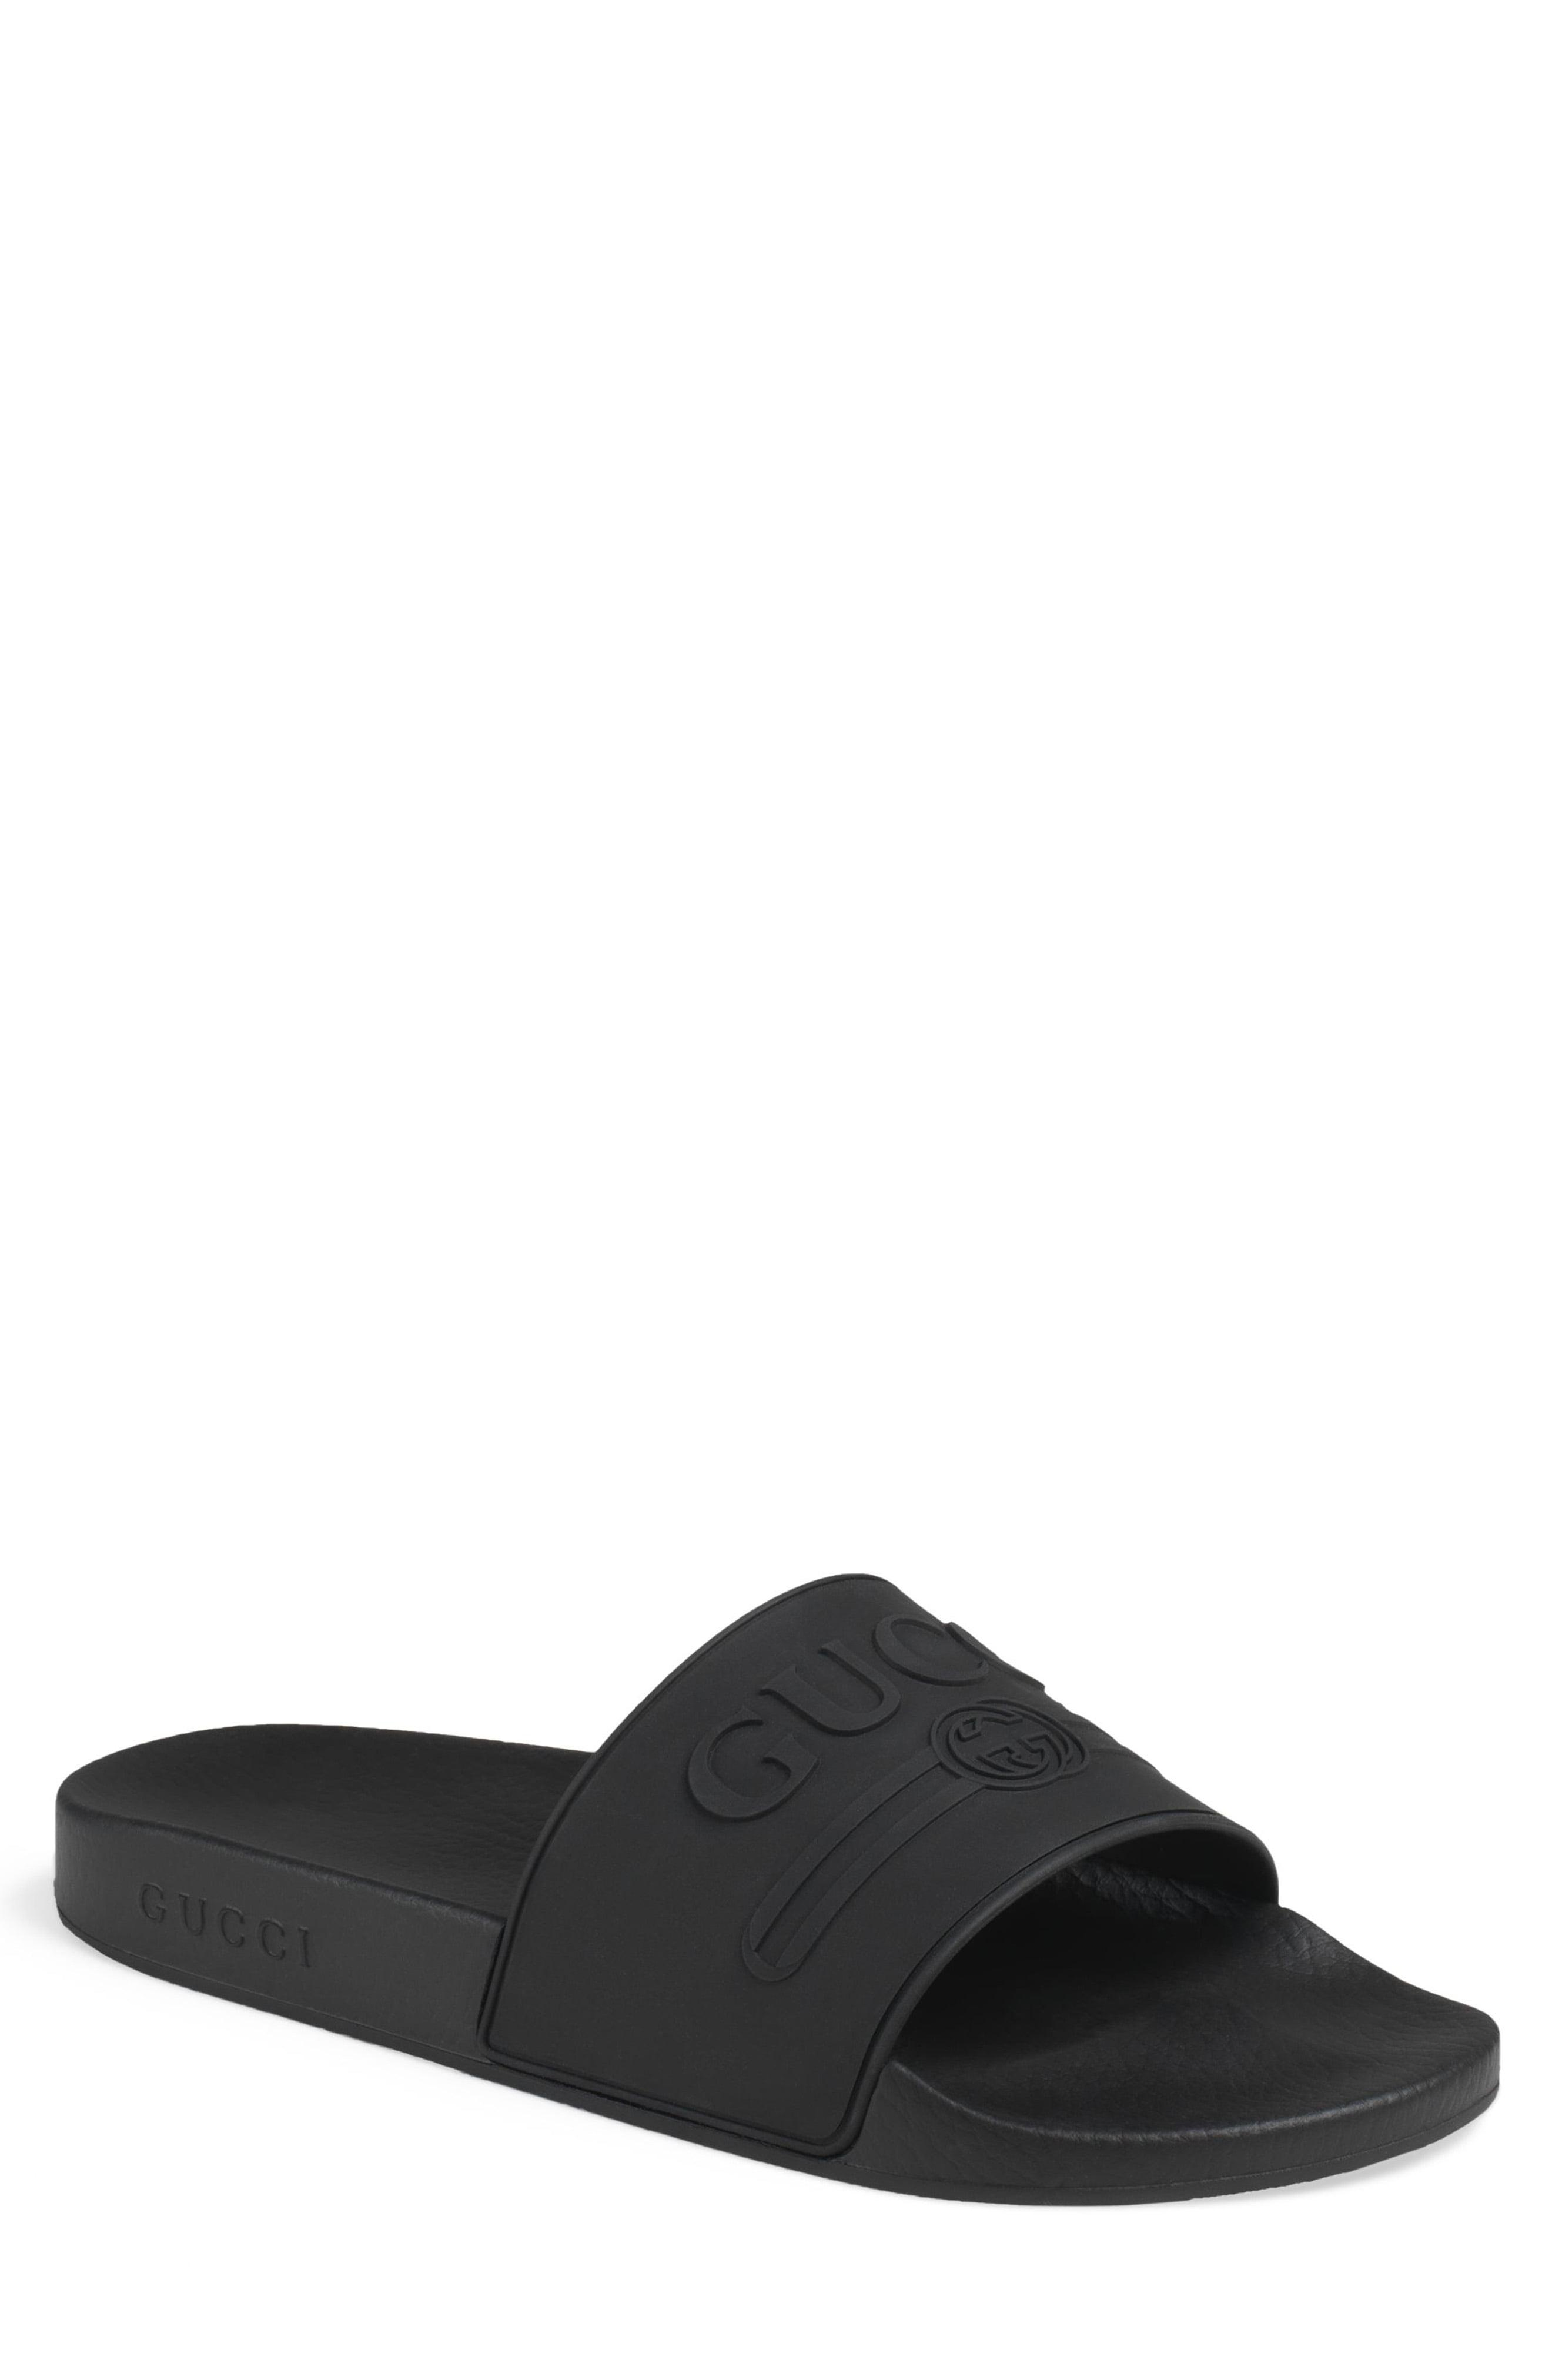 5a8f9bae4abd Lyst - Gucci Pursuit Logo Slides in Black for Men - Save 22%